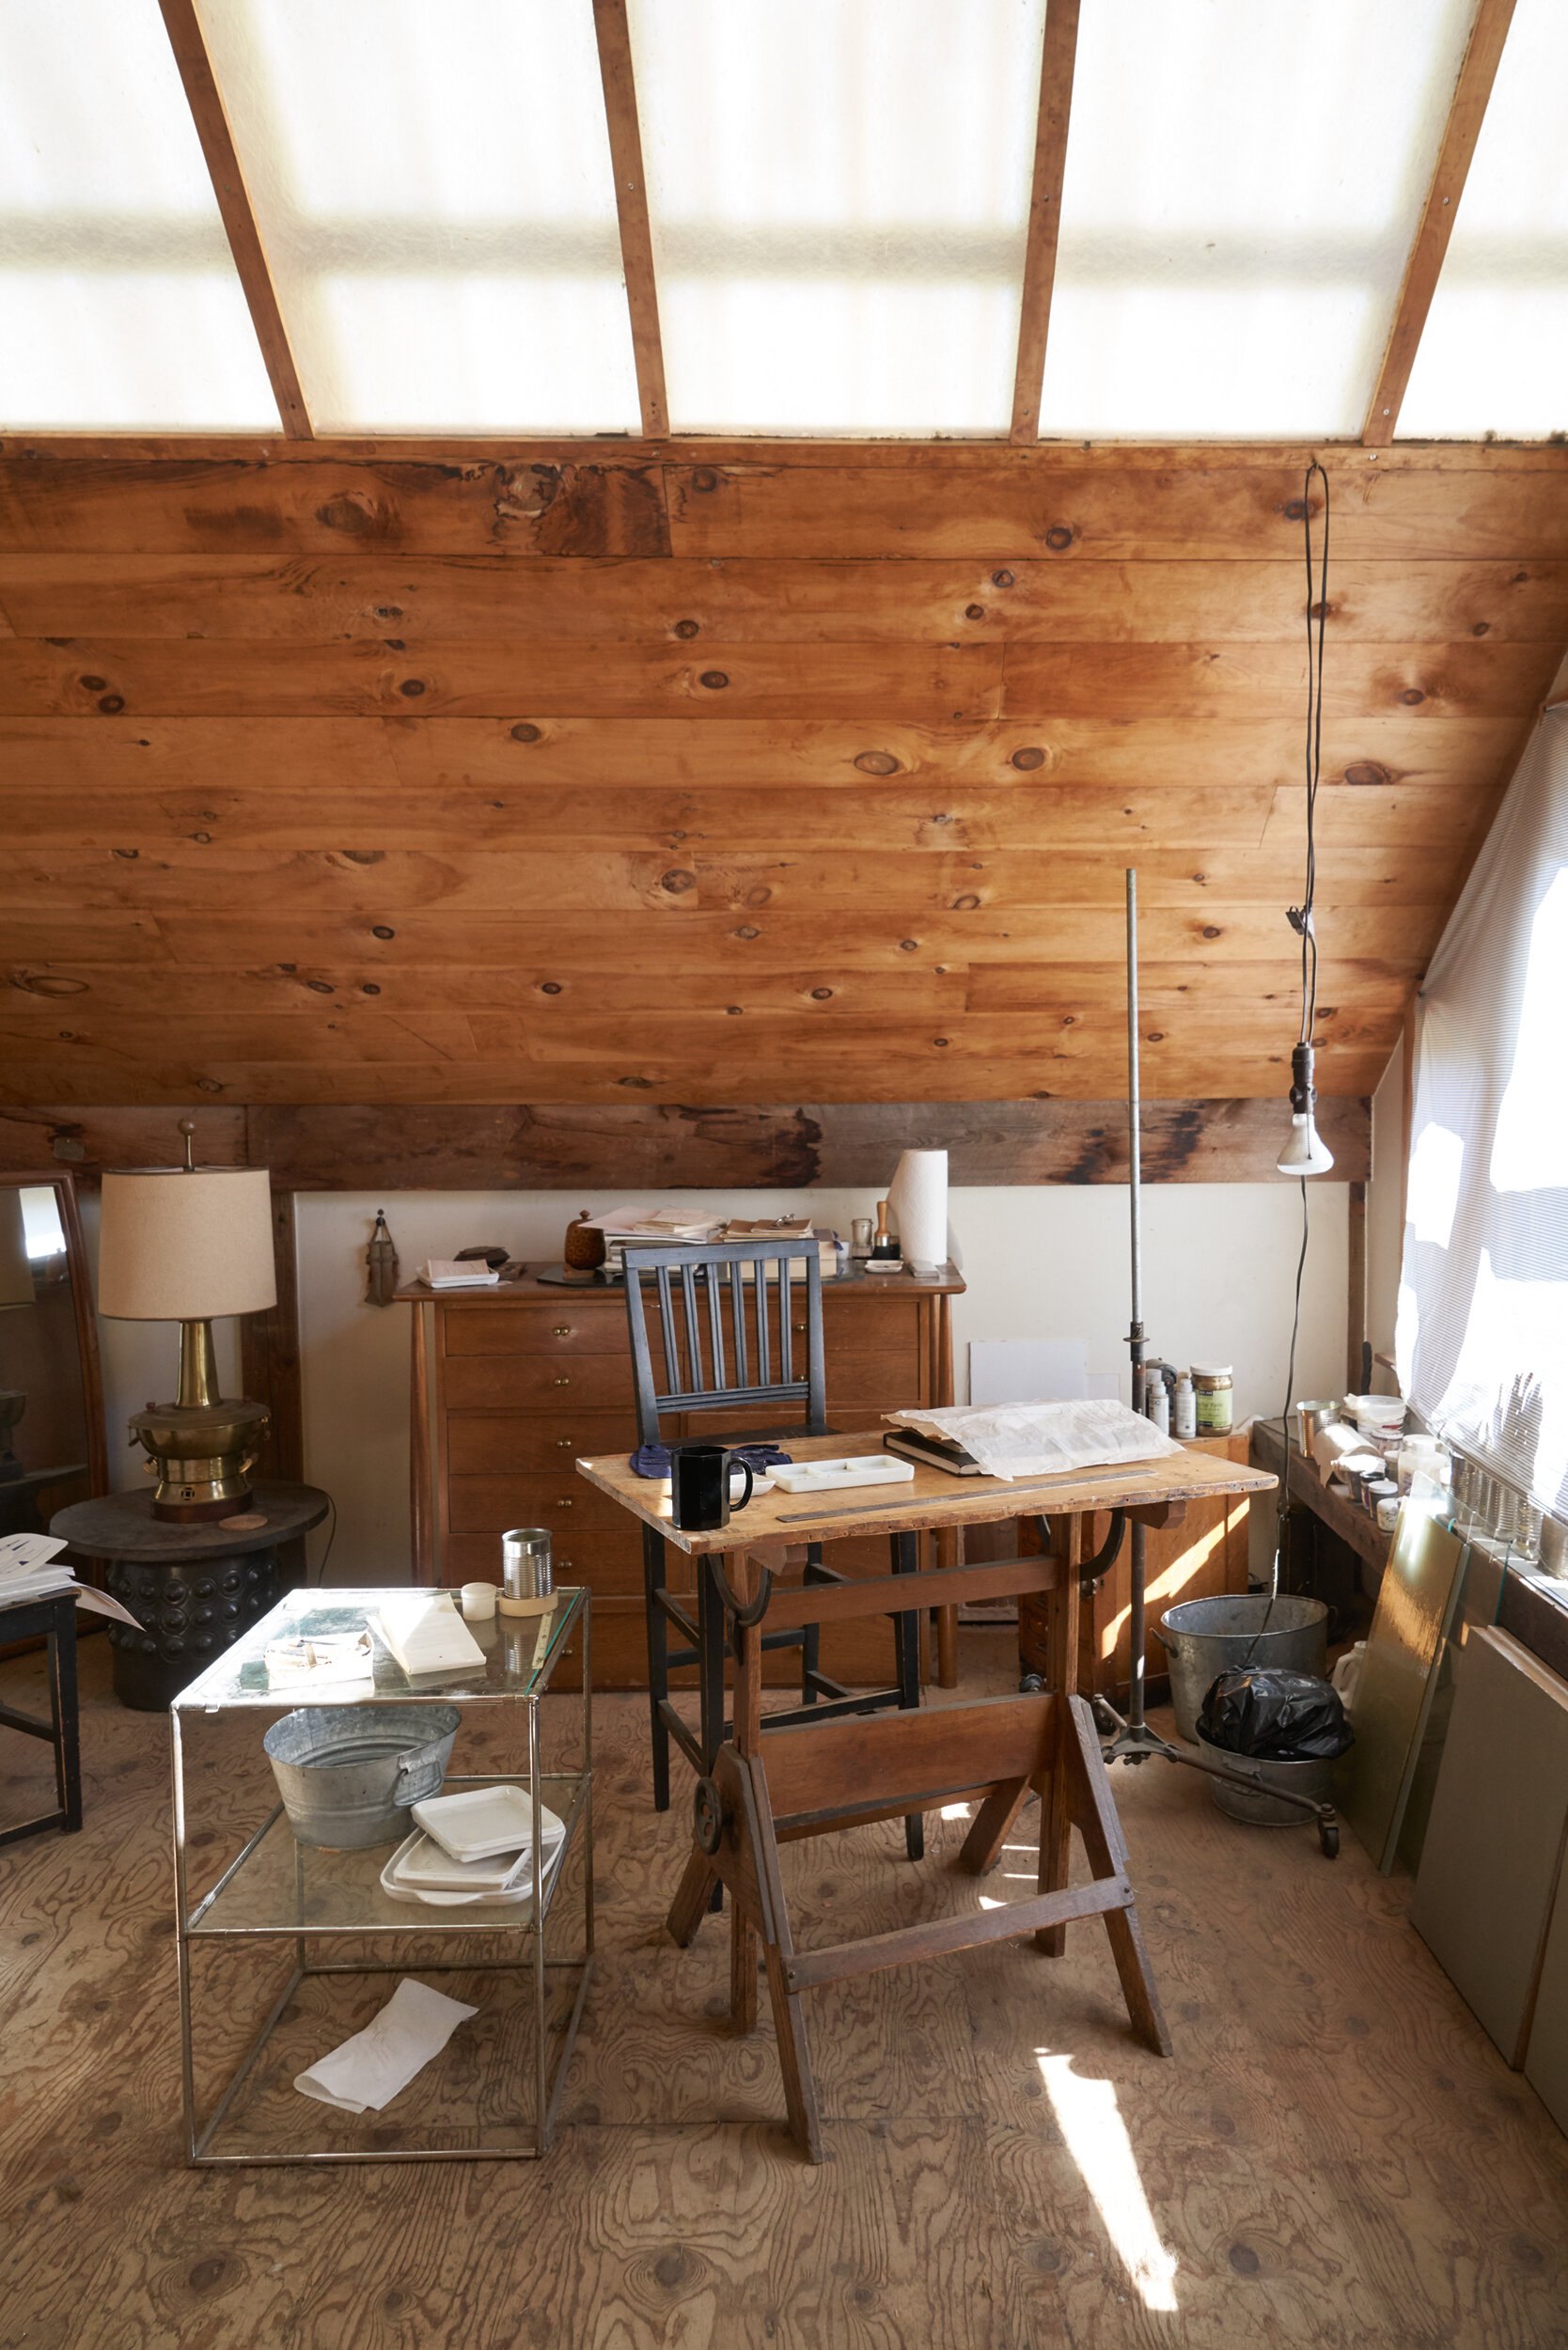 Work space in the barn.